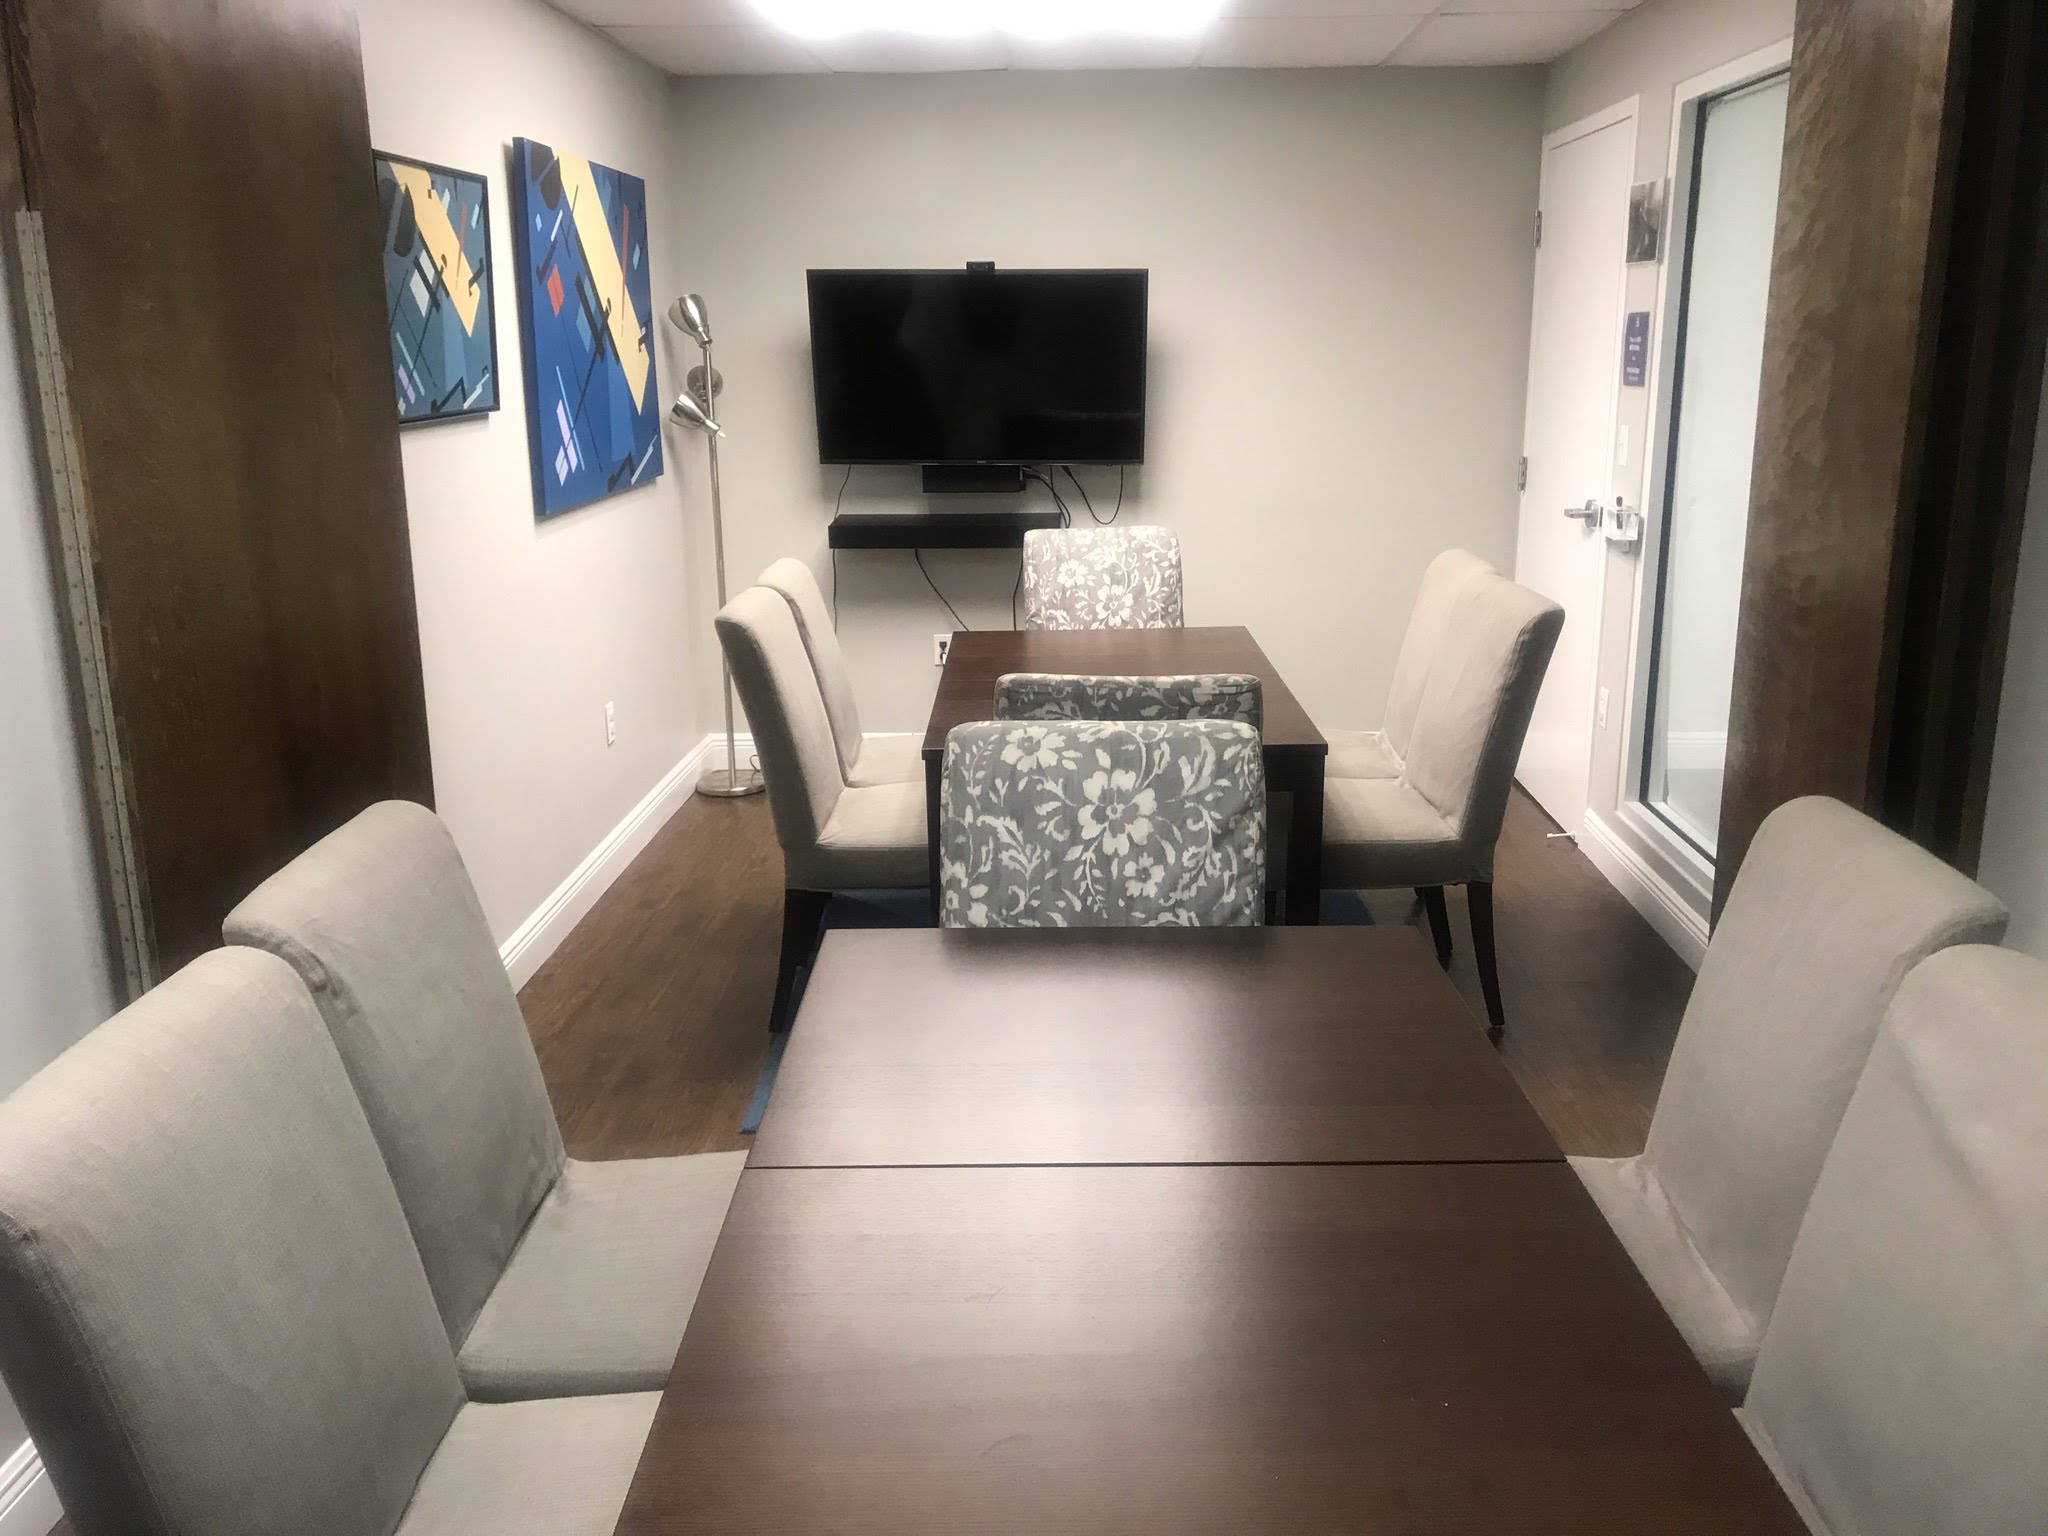 Rent Small Meeting Room Spce